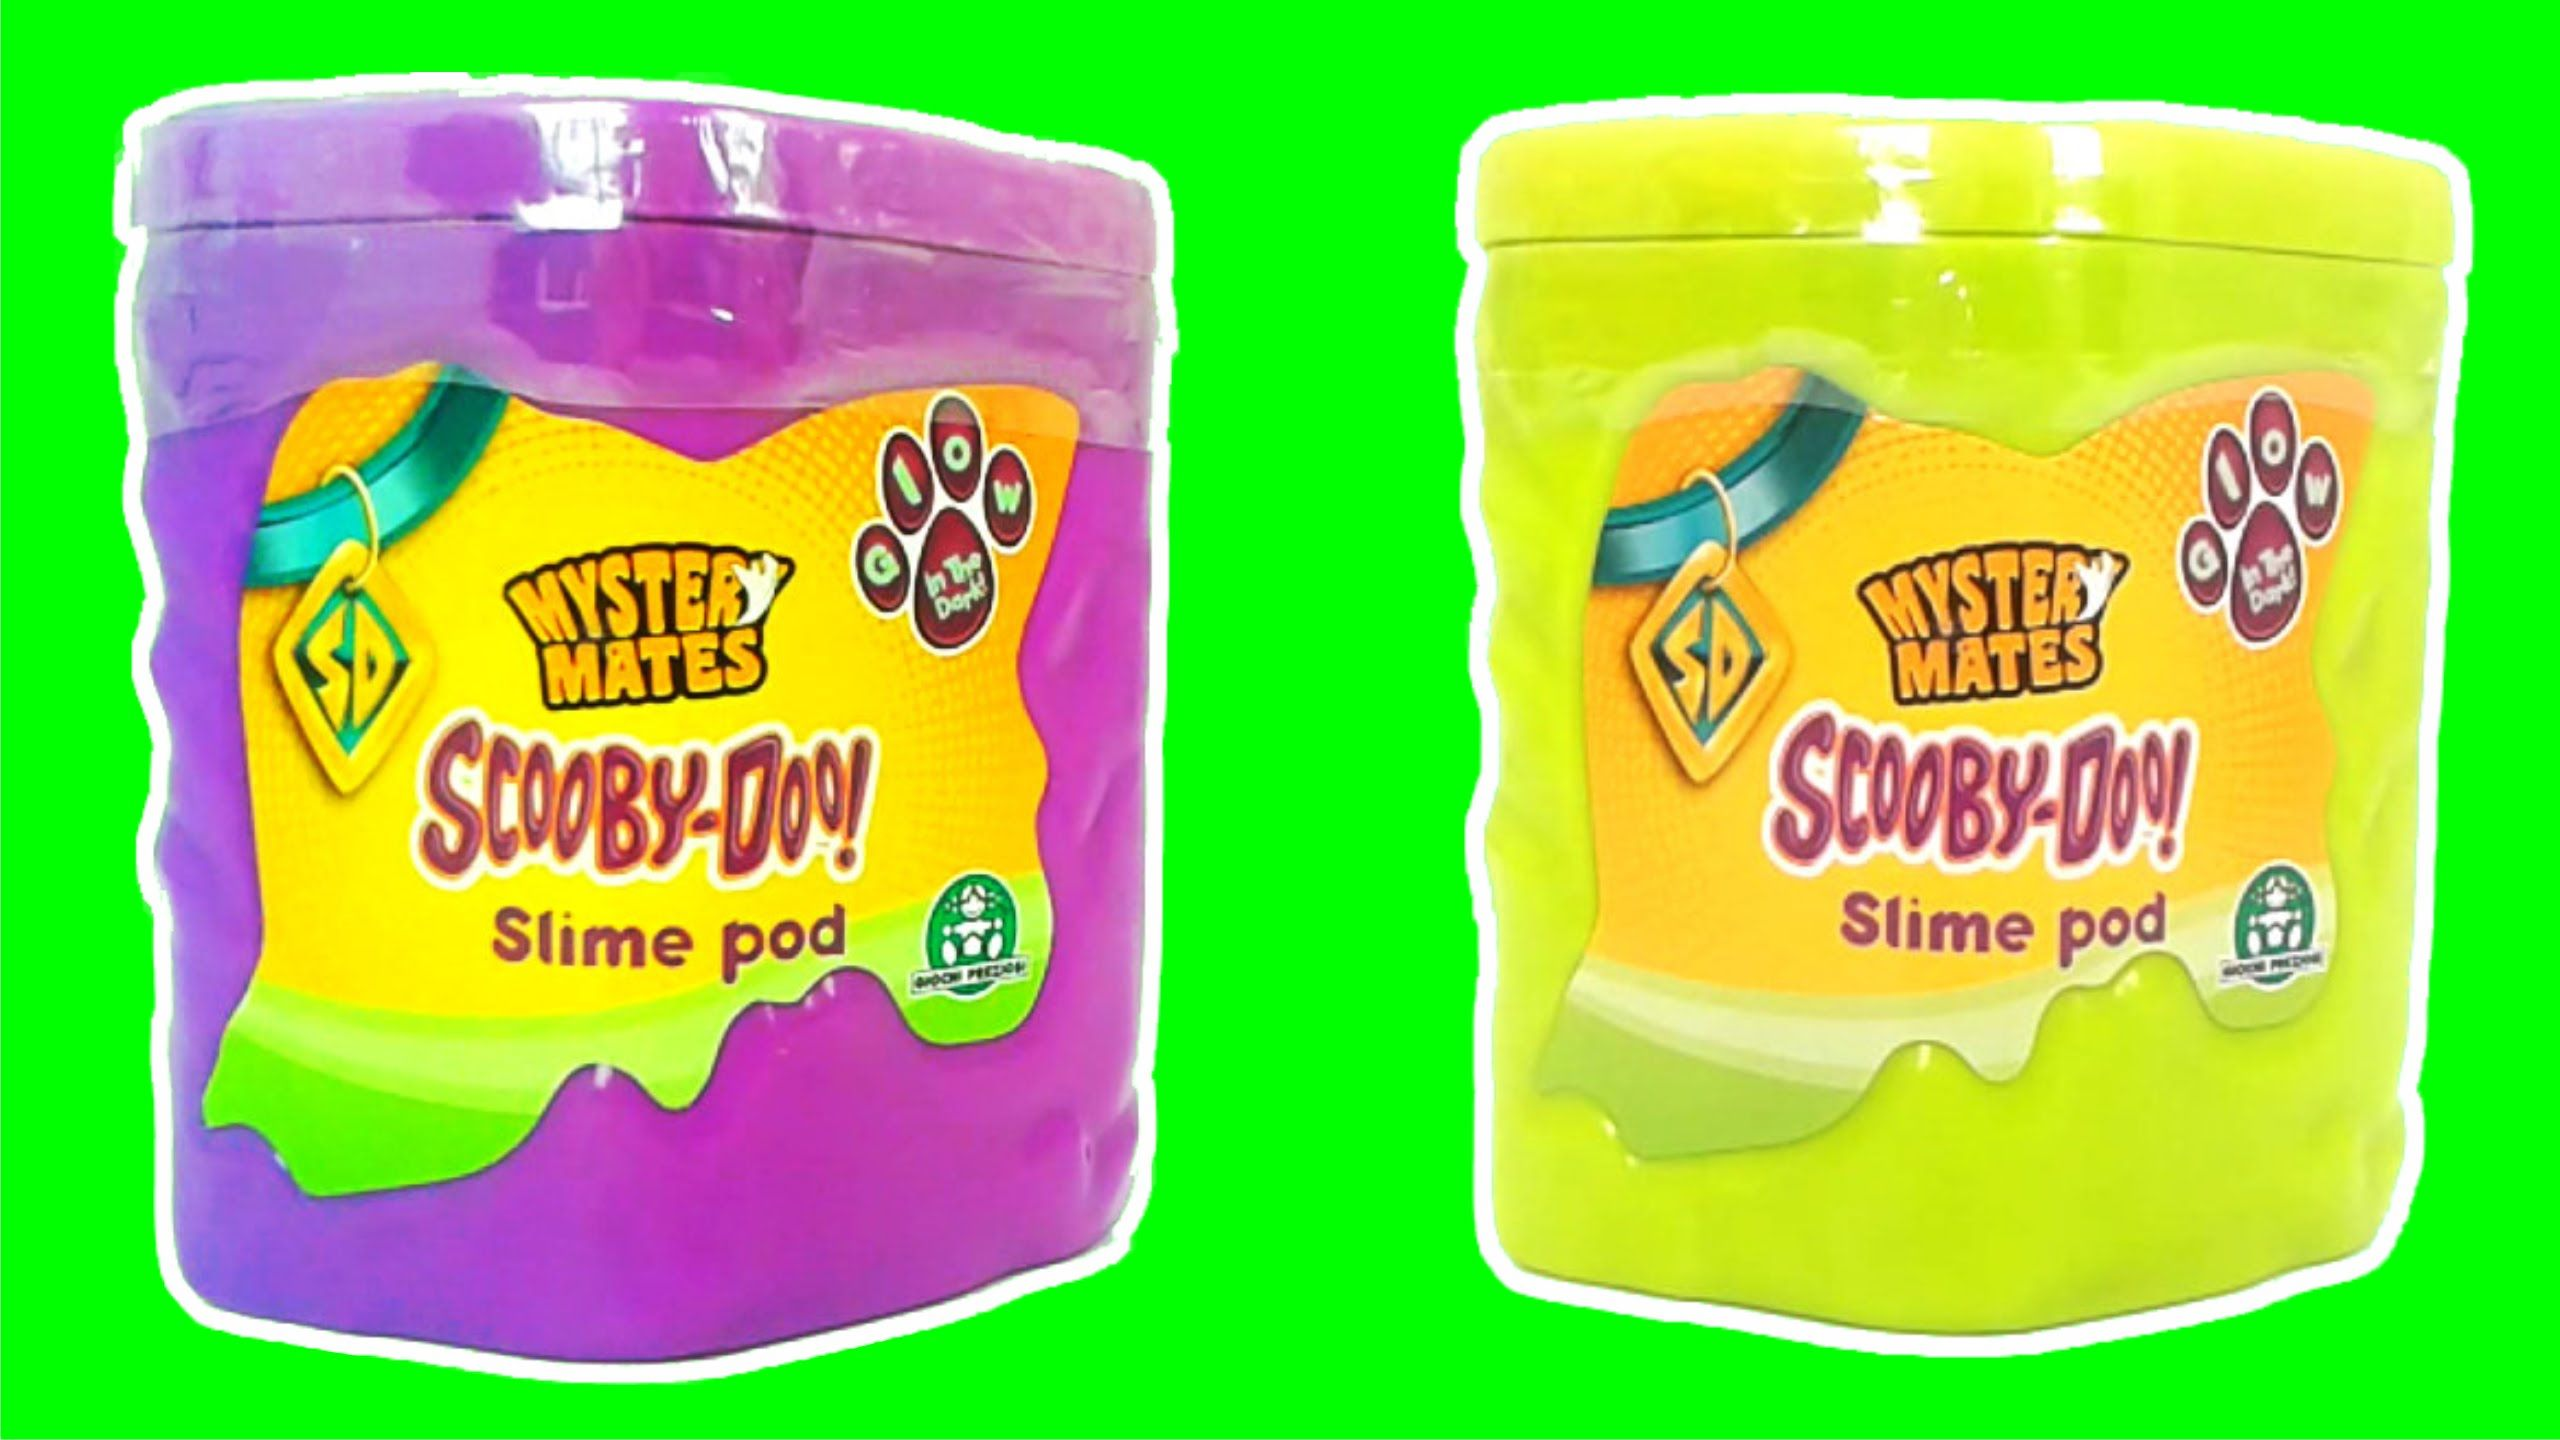 Slime Surprise Toys Scooby Doo Mystery Mates Slime Pod Unboxing Video Scooby Doo Mystery Unboxing Videos Slime